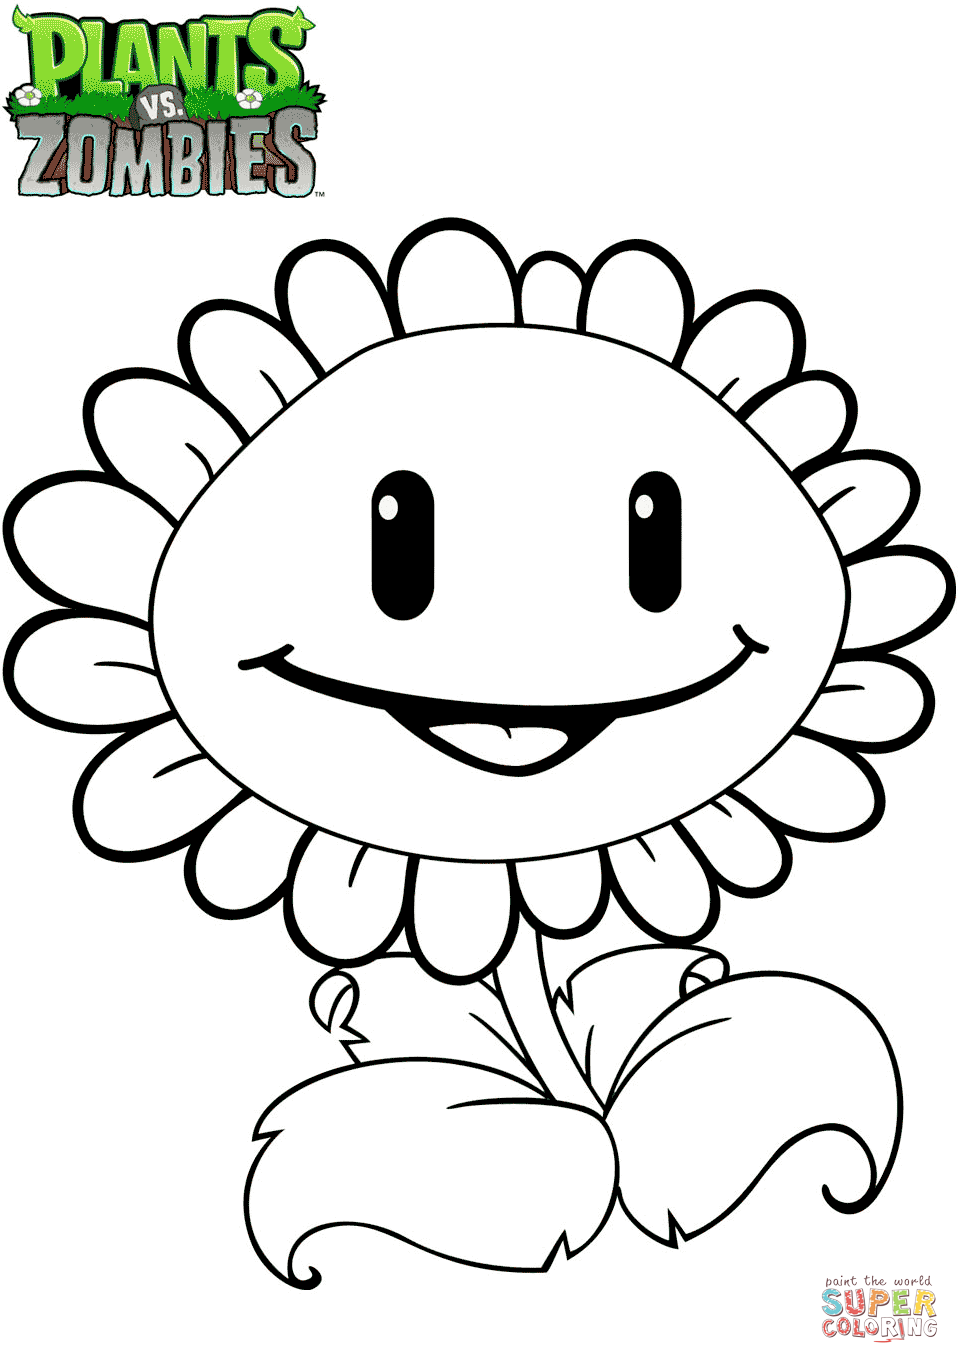 Plants Vs Zombies Drawing At Getdrawings Com Free For